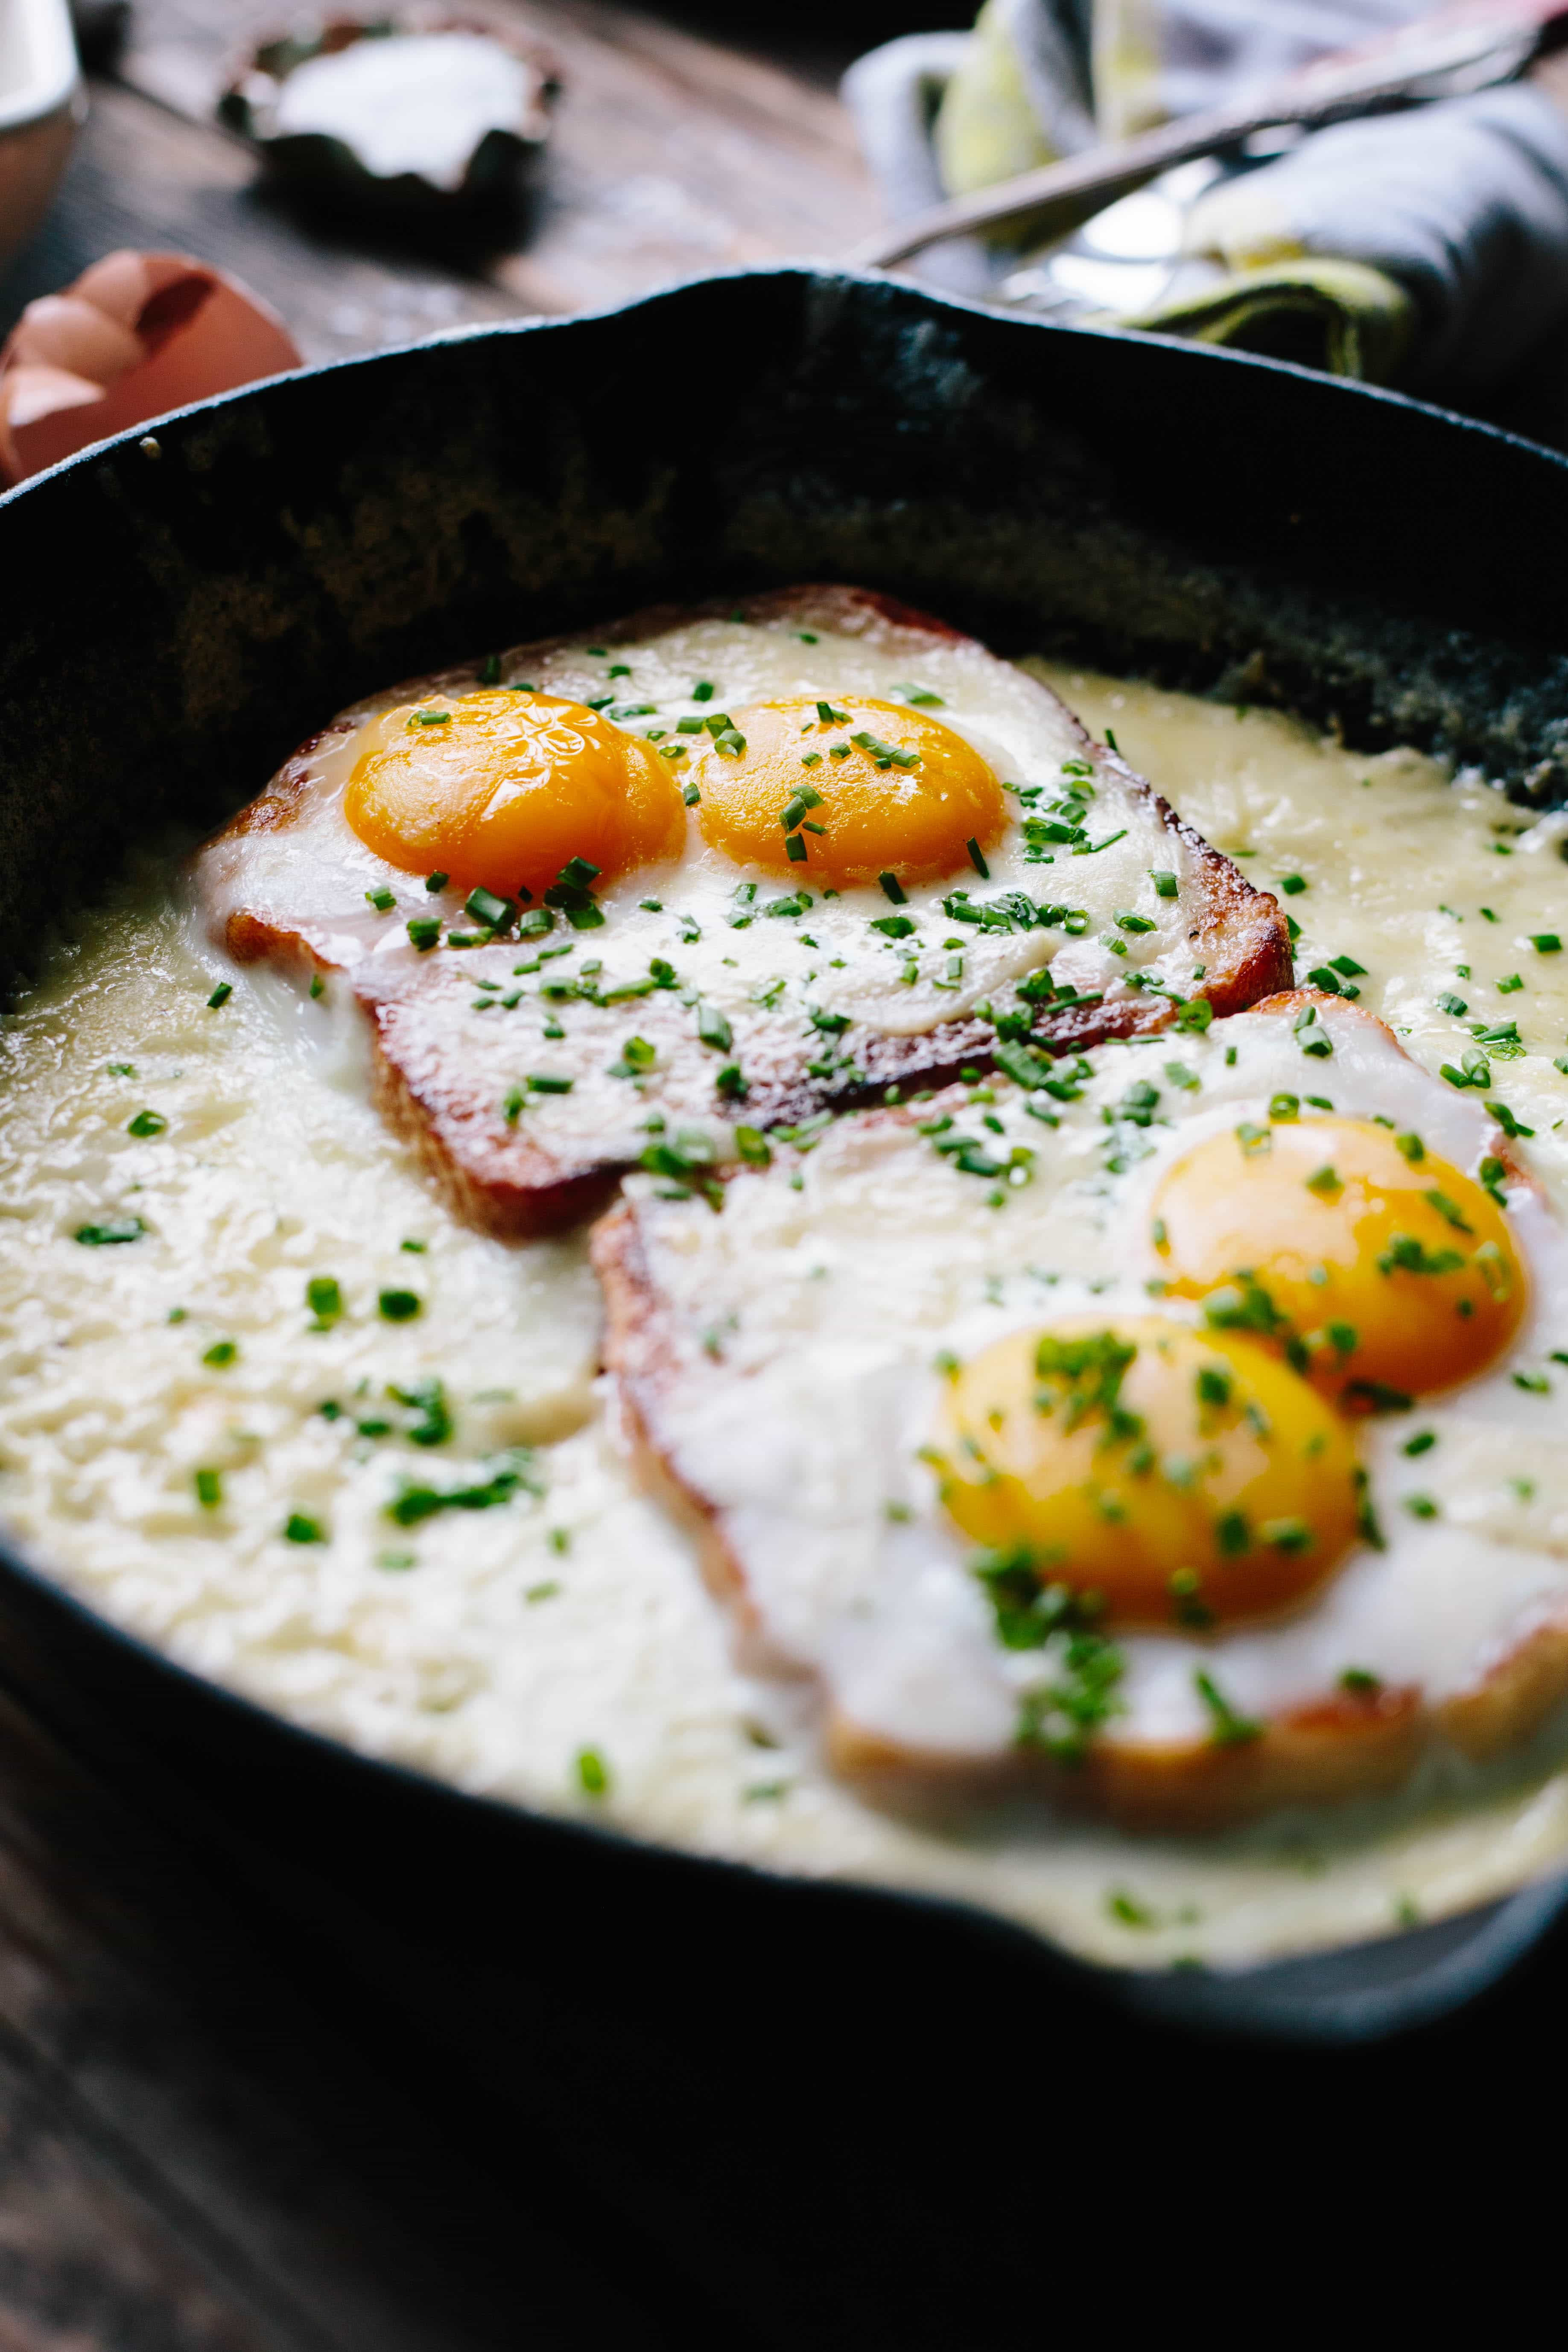 French Baked Toast with Cream and Eggs   Easy + Impressive French Breakfast   ColeyCooks.com